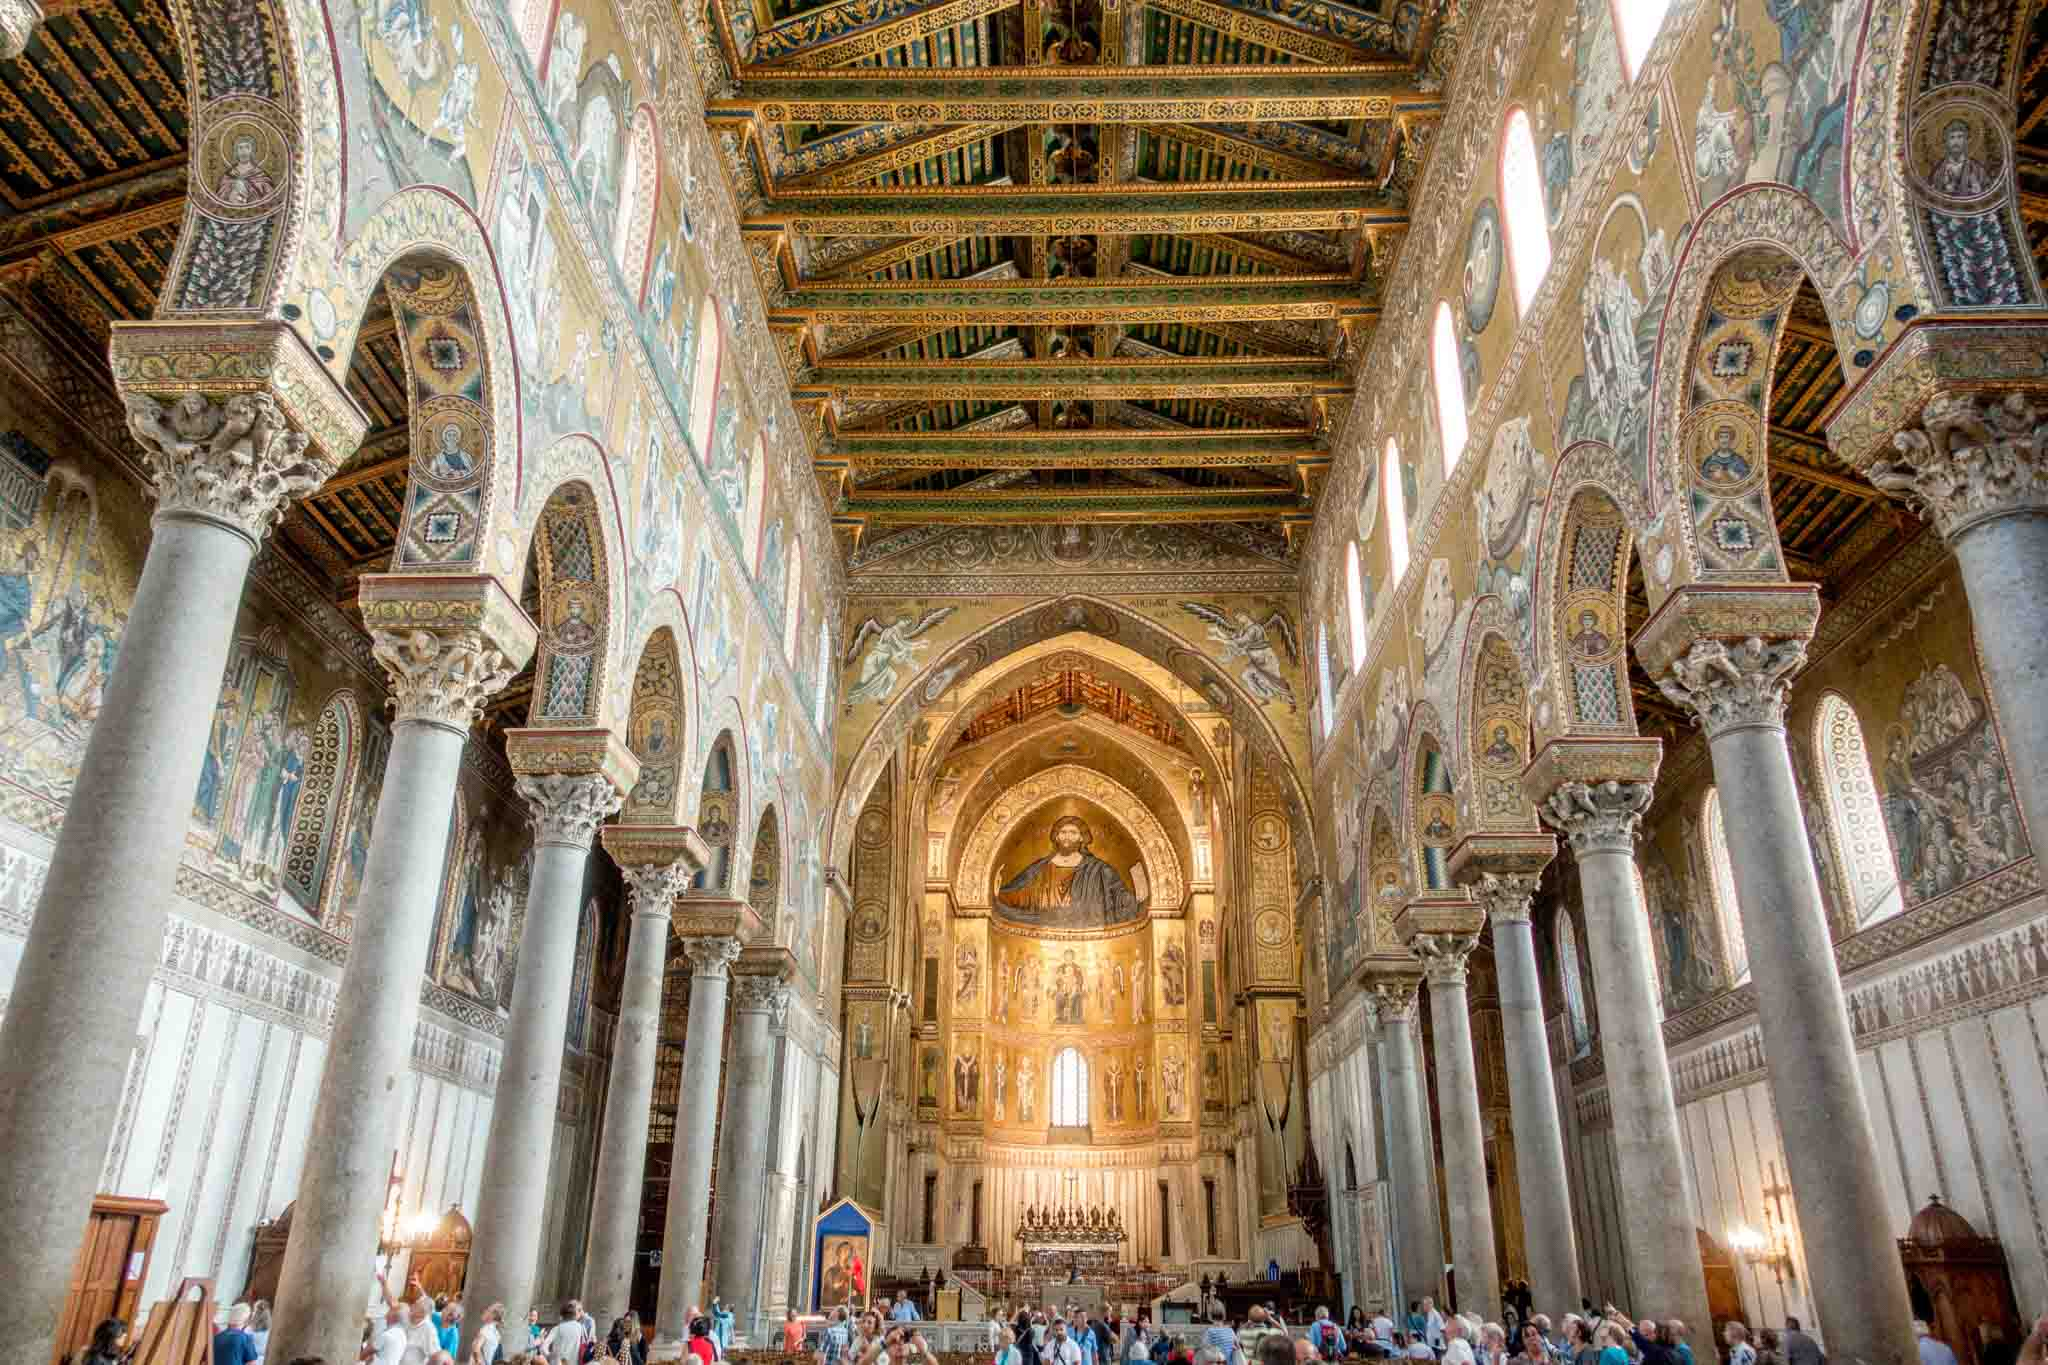 Interior of a cathedral decorated with gold mosaics